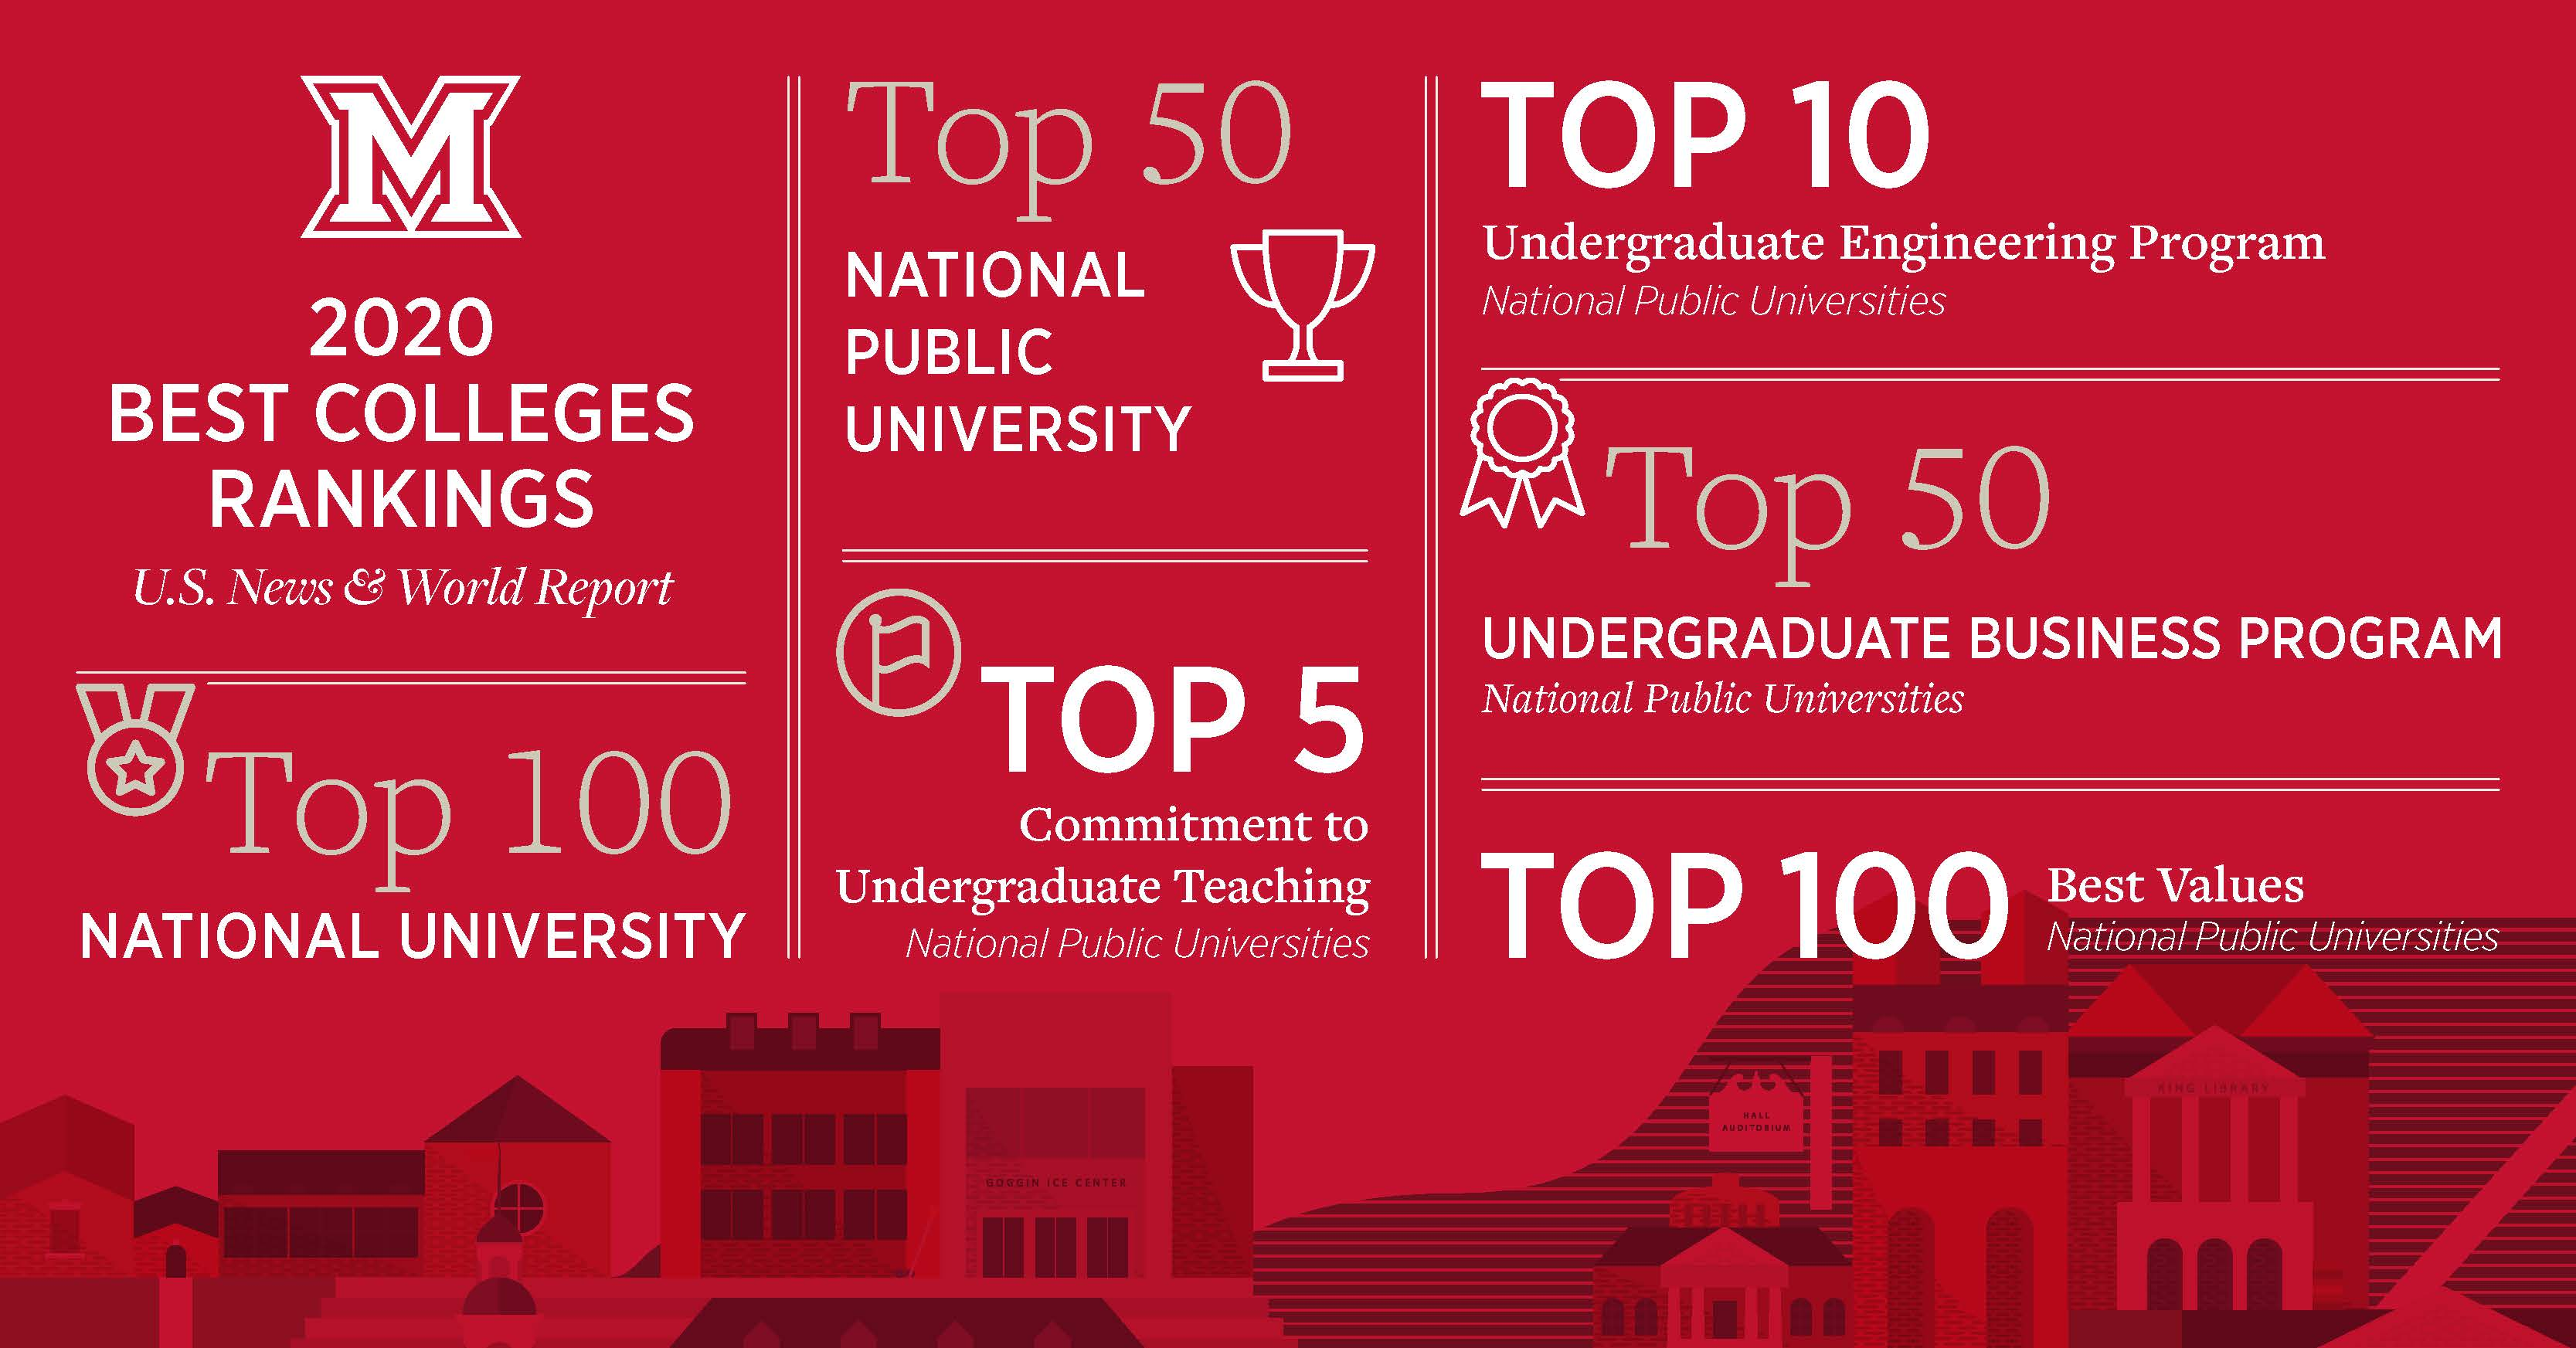 Top 10 Best Colleges For Students With >> Miami University Ranked A Top 50 National Public University